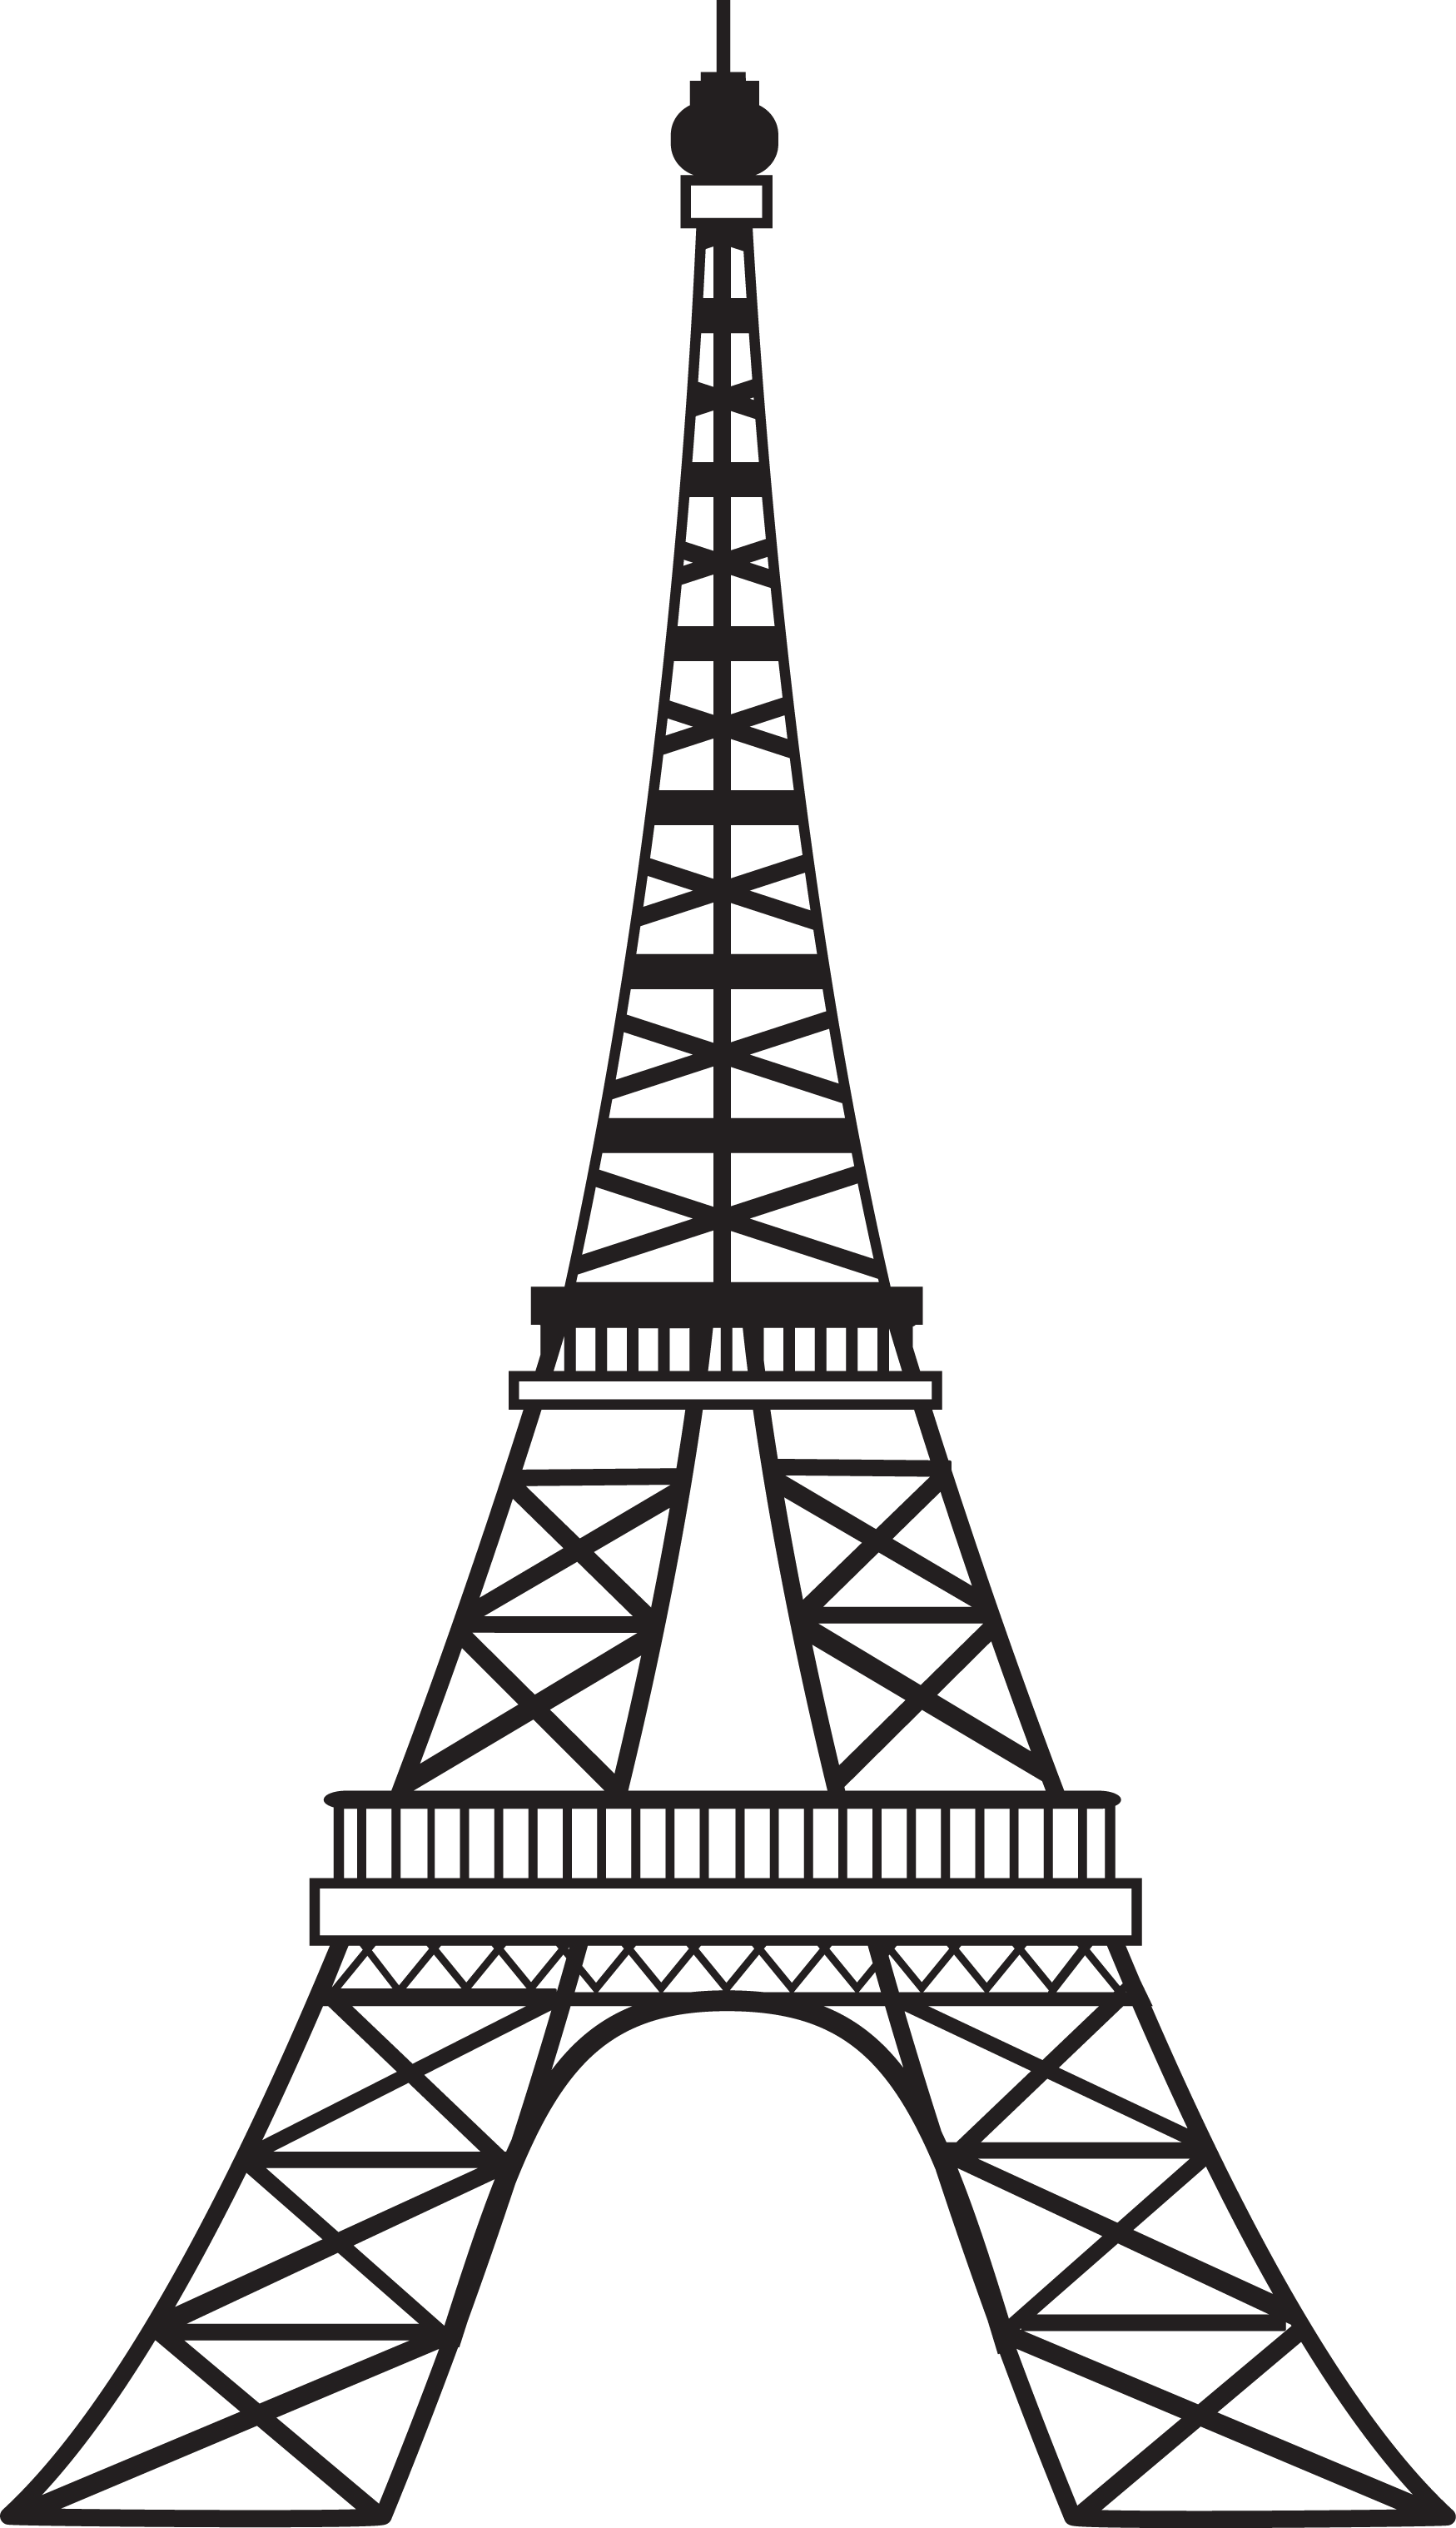 Eiffel Tower Line Drawing Png Free Cliparts That You Can Download To